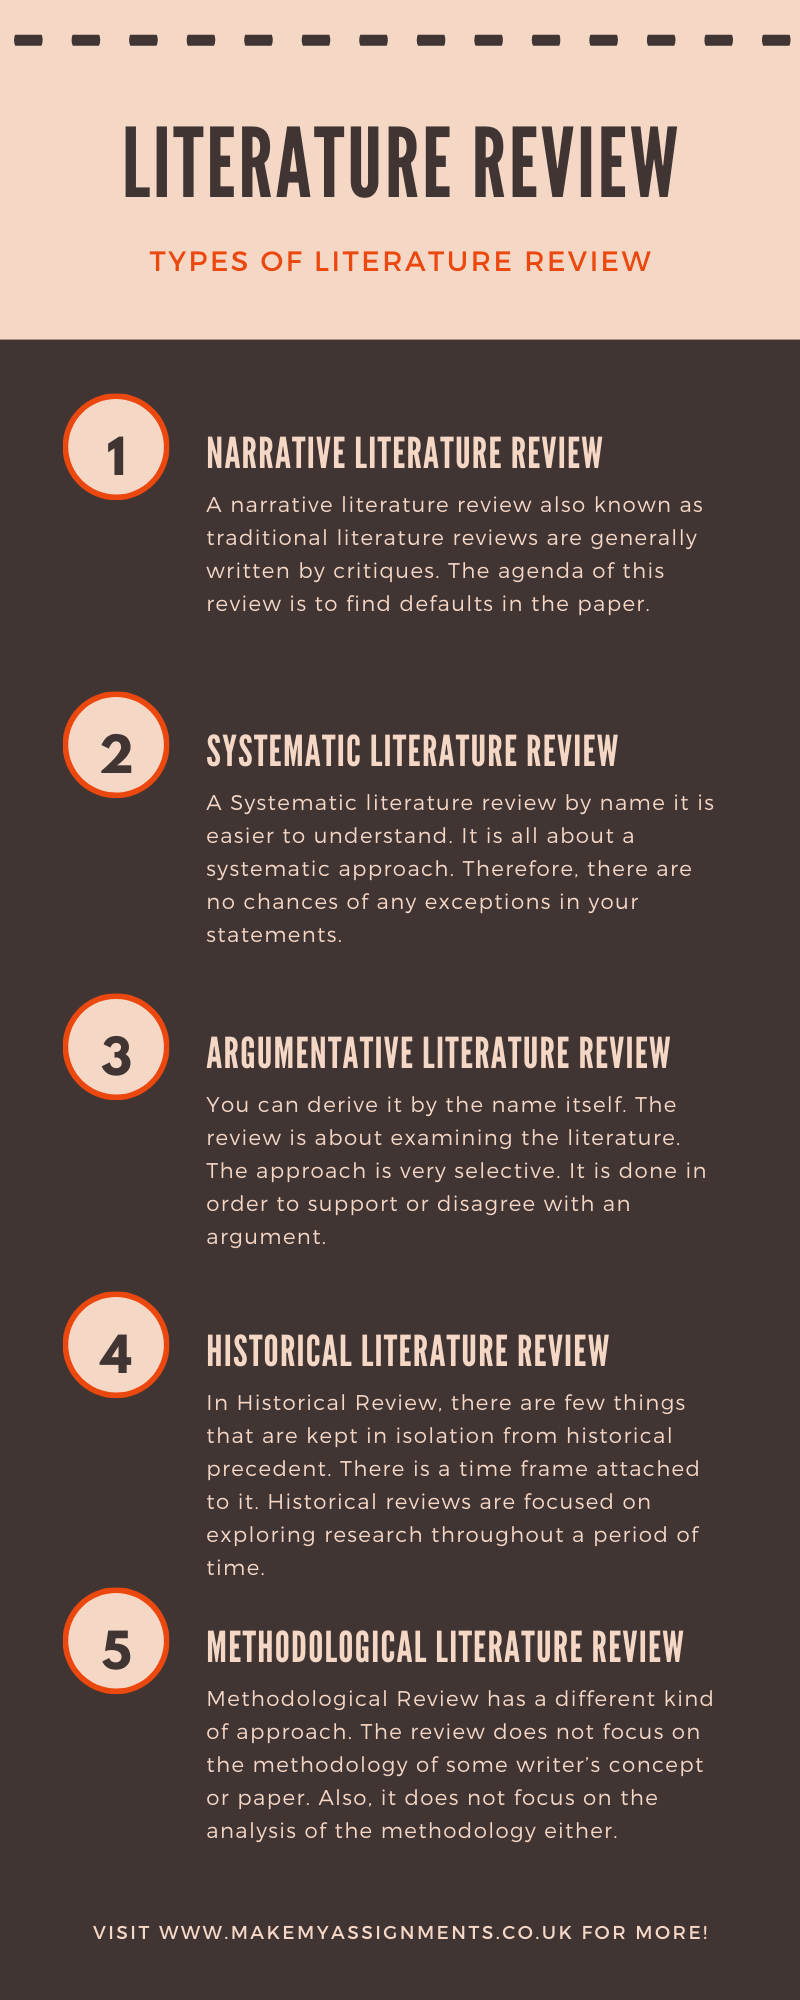 How to Write the Literature Review for a Dissertation.